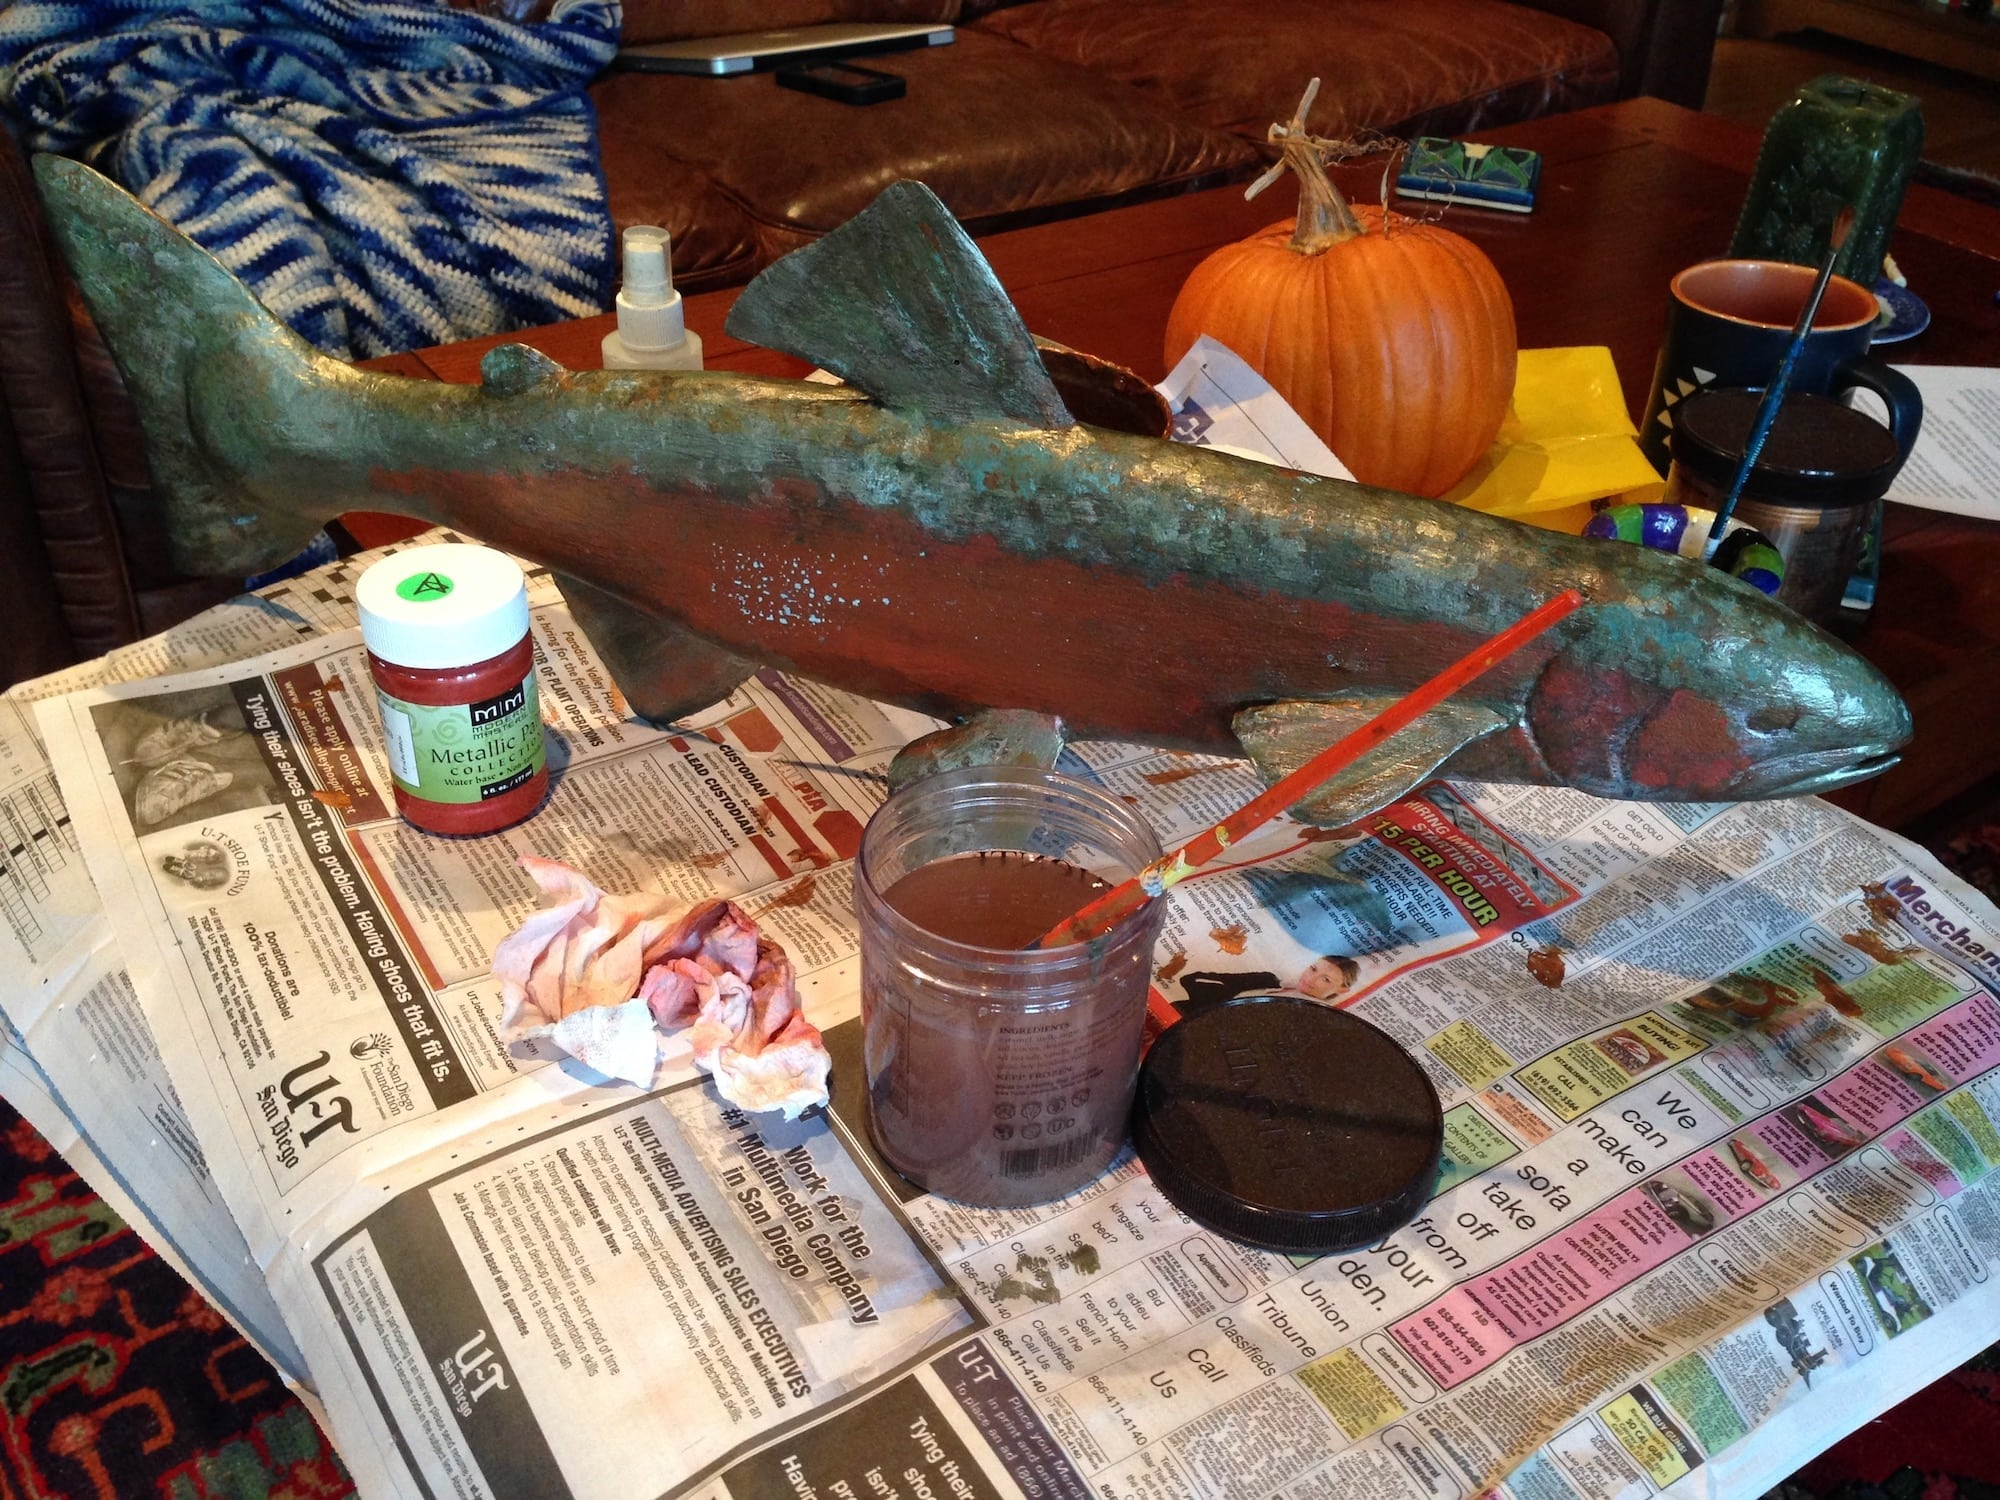 Fish (trout) in progress.